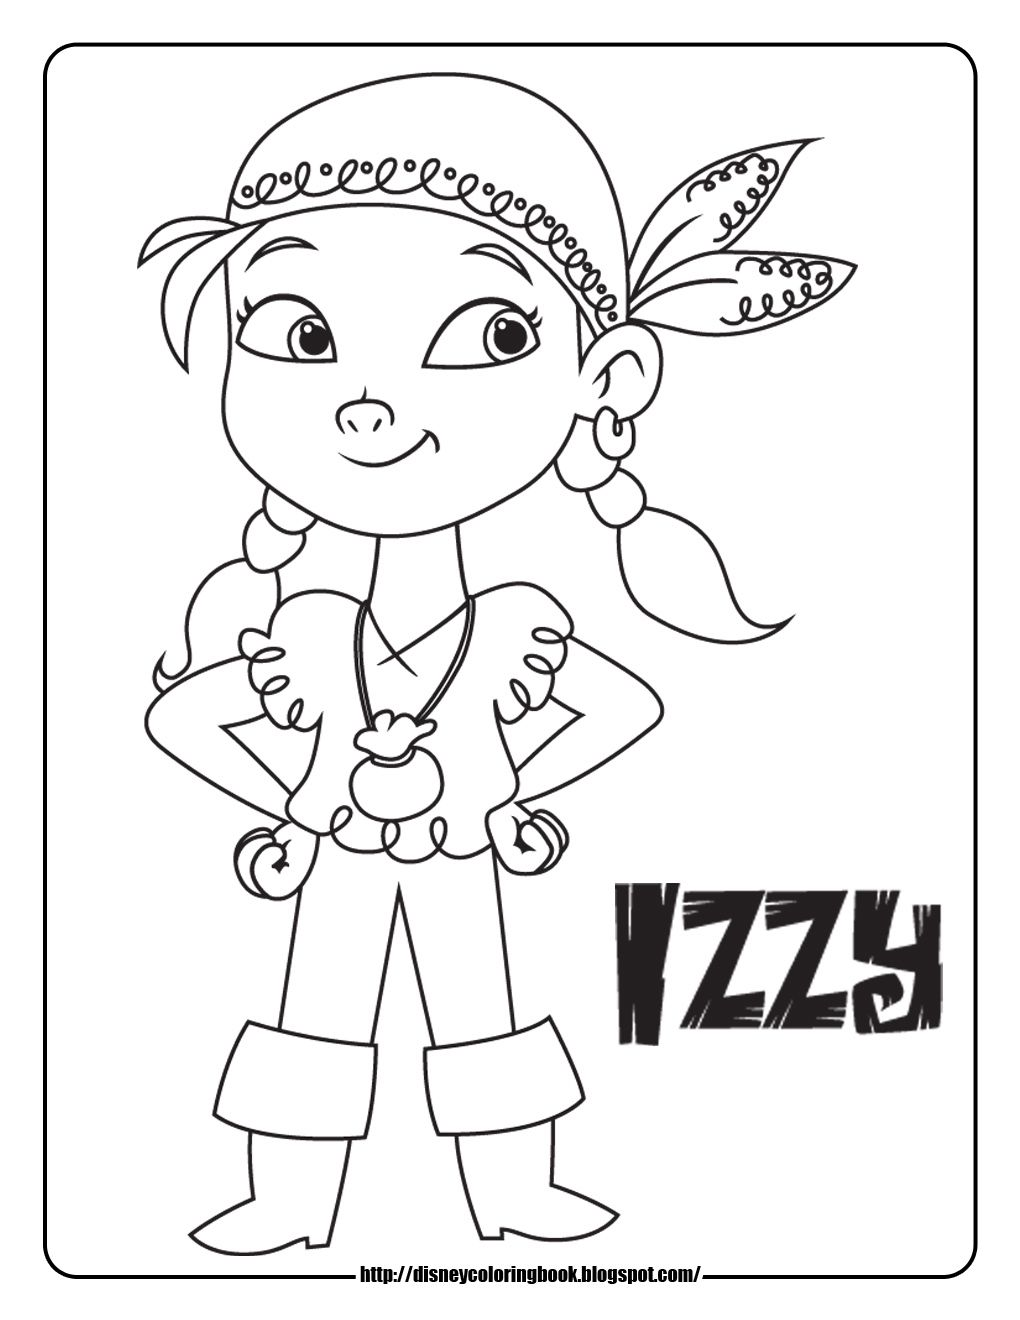 Pirate colouring pages to print - Disney Coloring Pages And Sheets For Kids Jake And The Neverland Pirates 1 Free